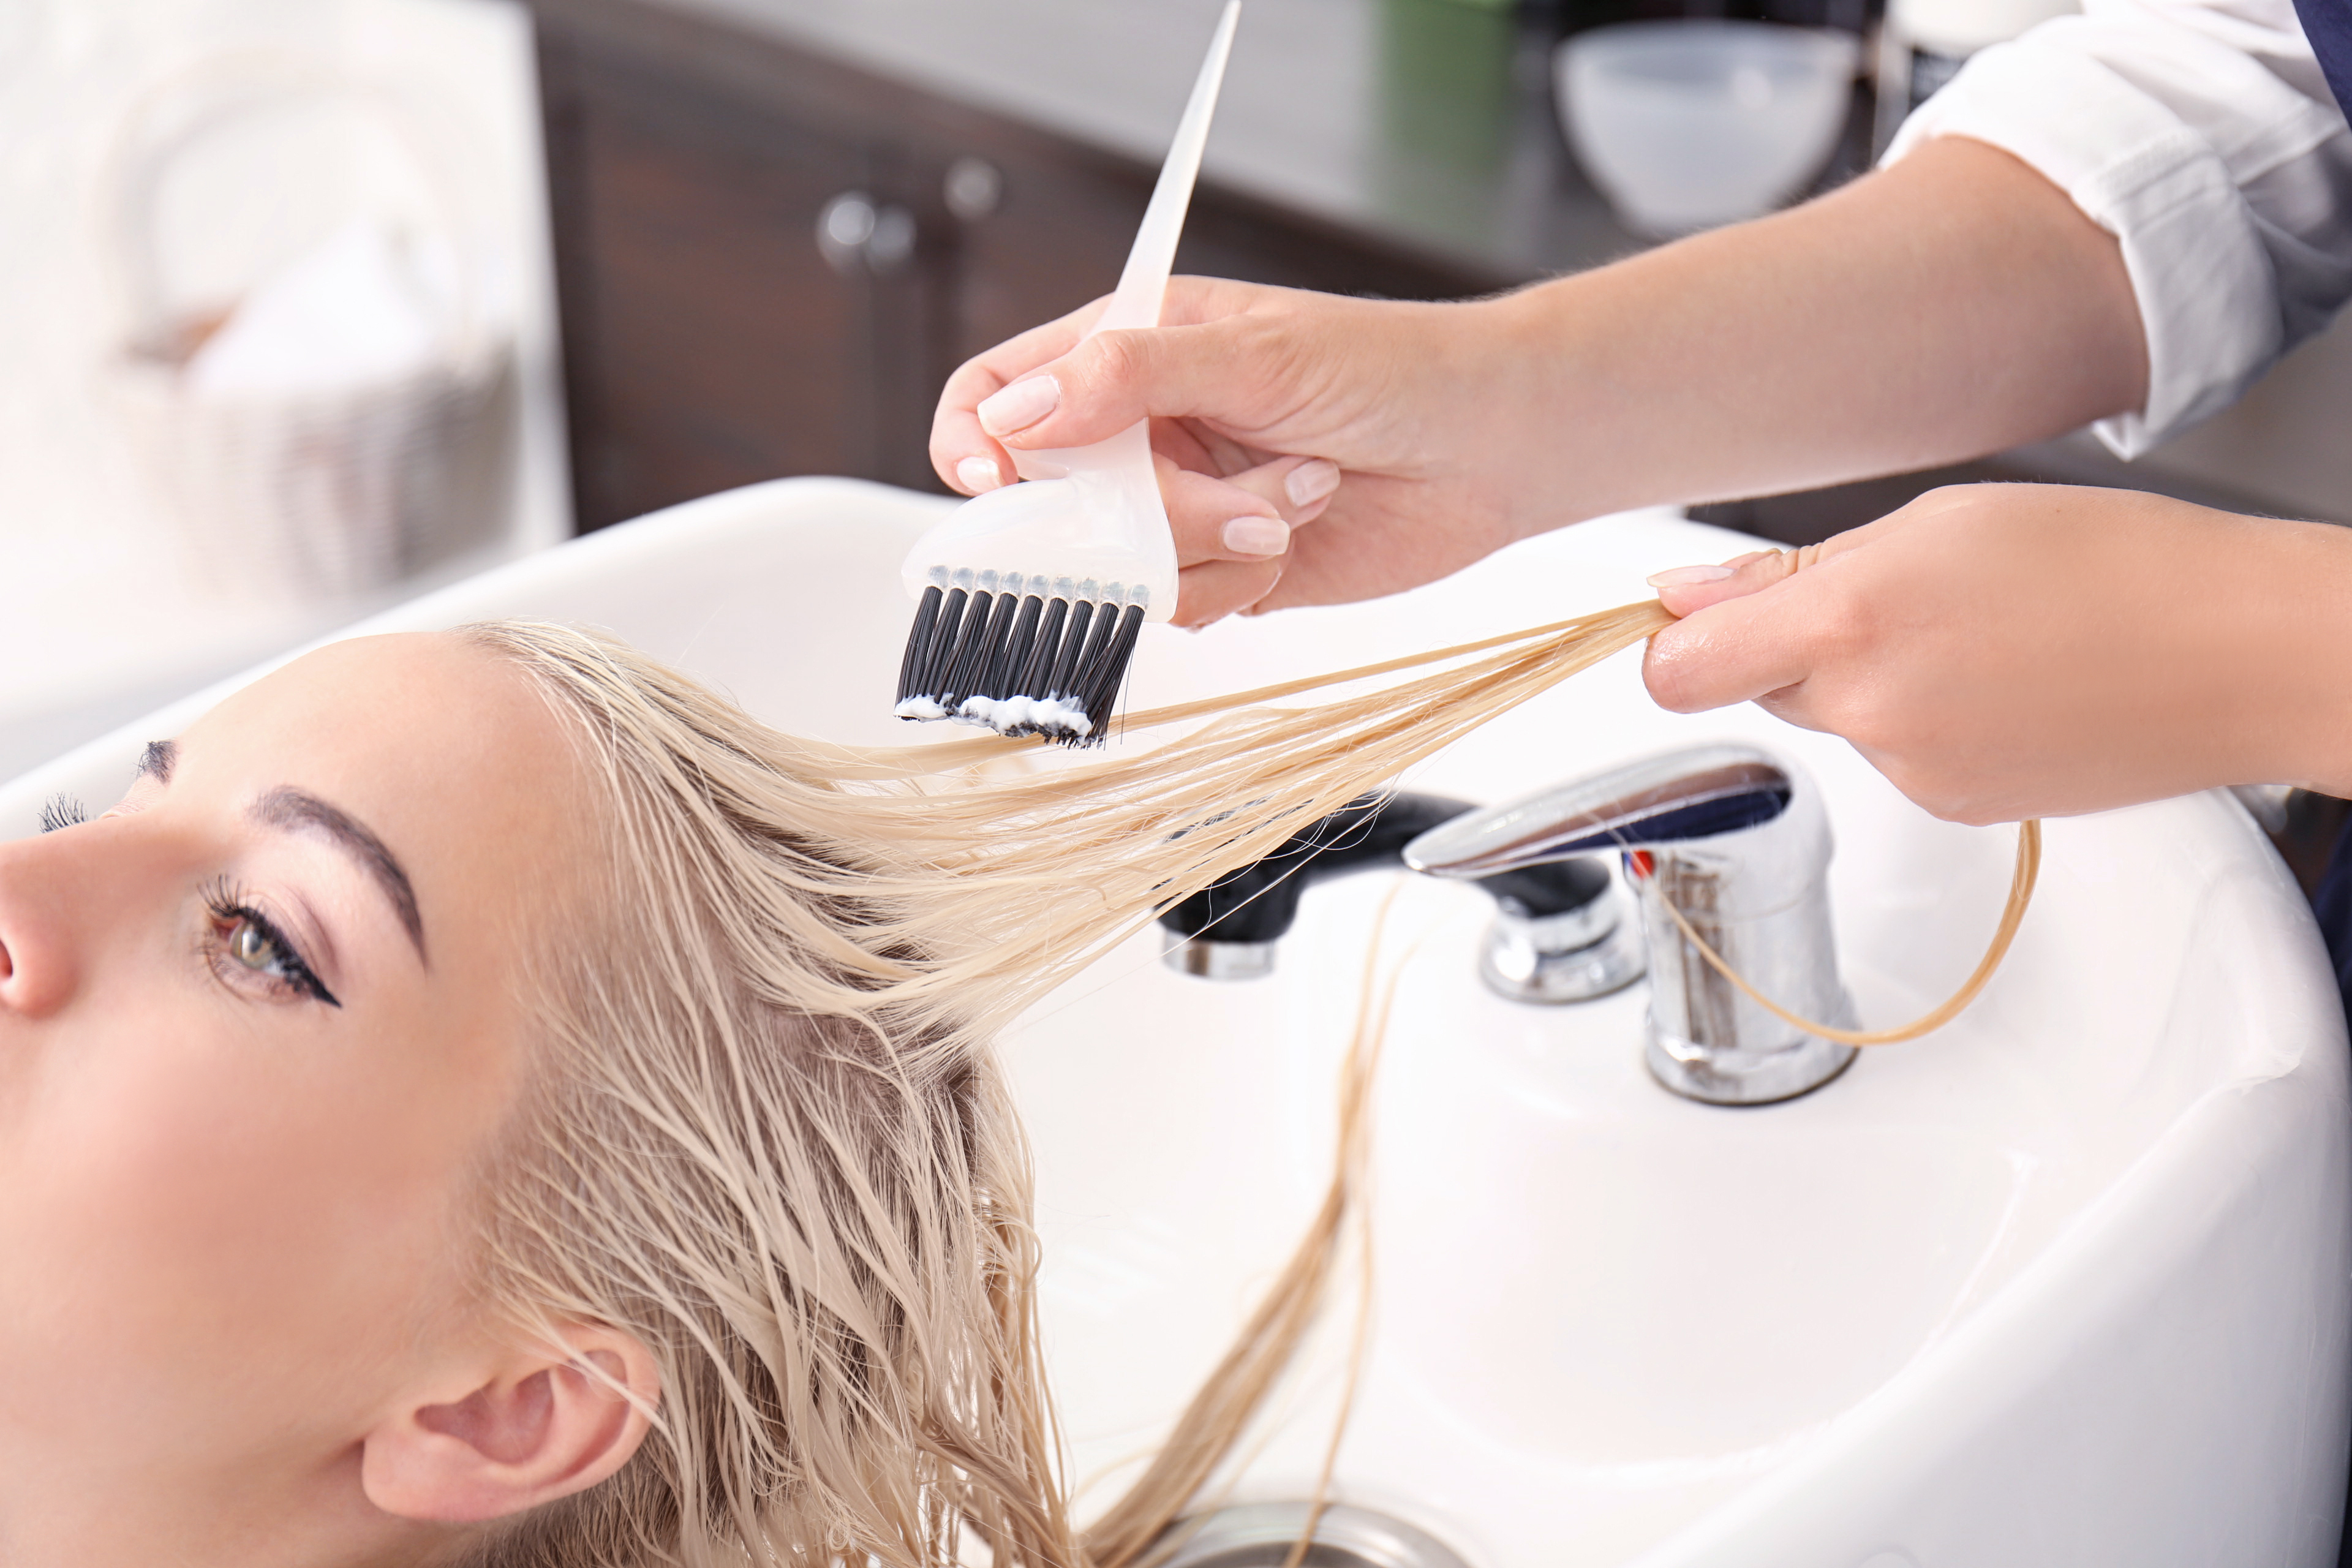 hands of a hairstylist putting color on platinum blonde client in sink